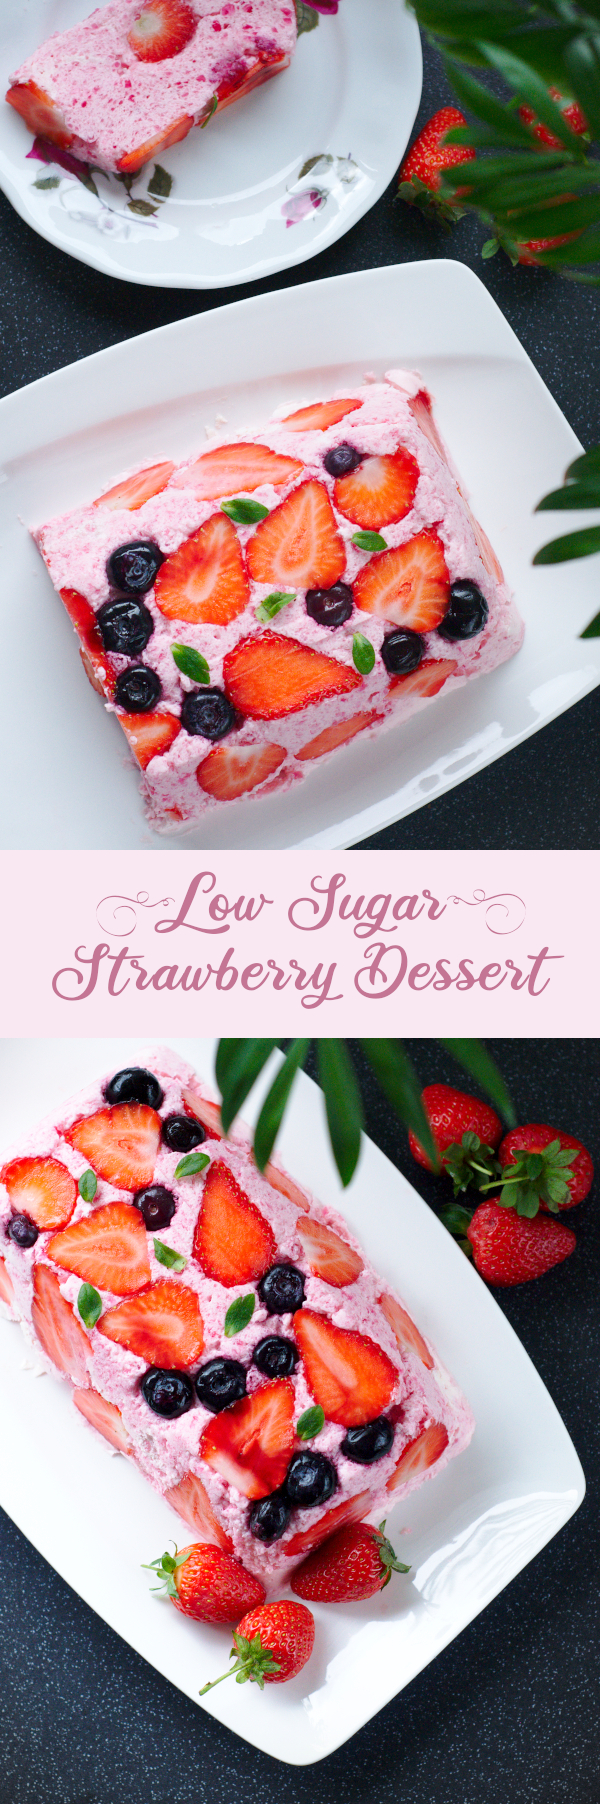 low sugar strawberry dessert